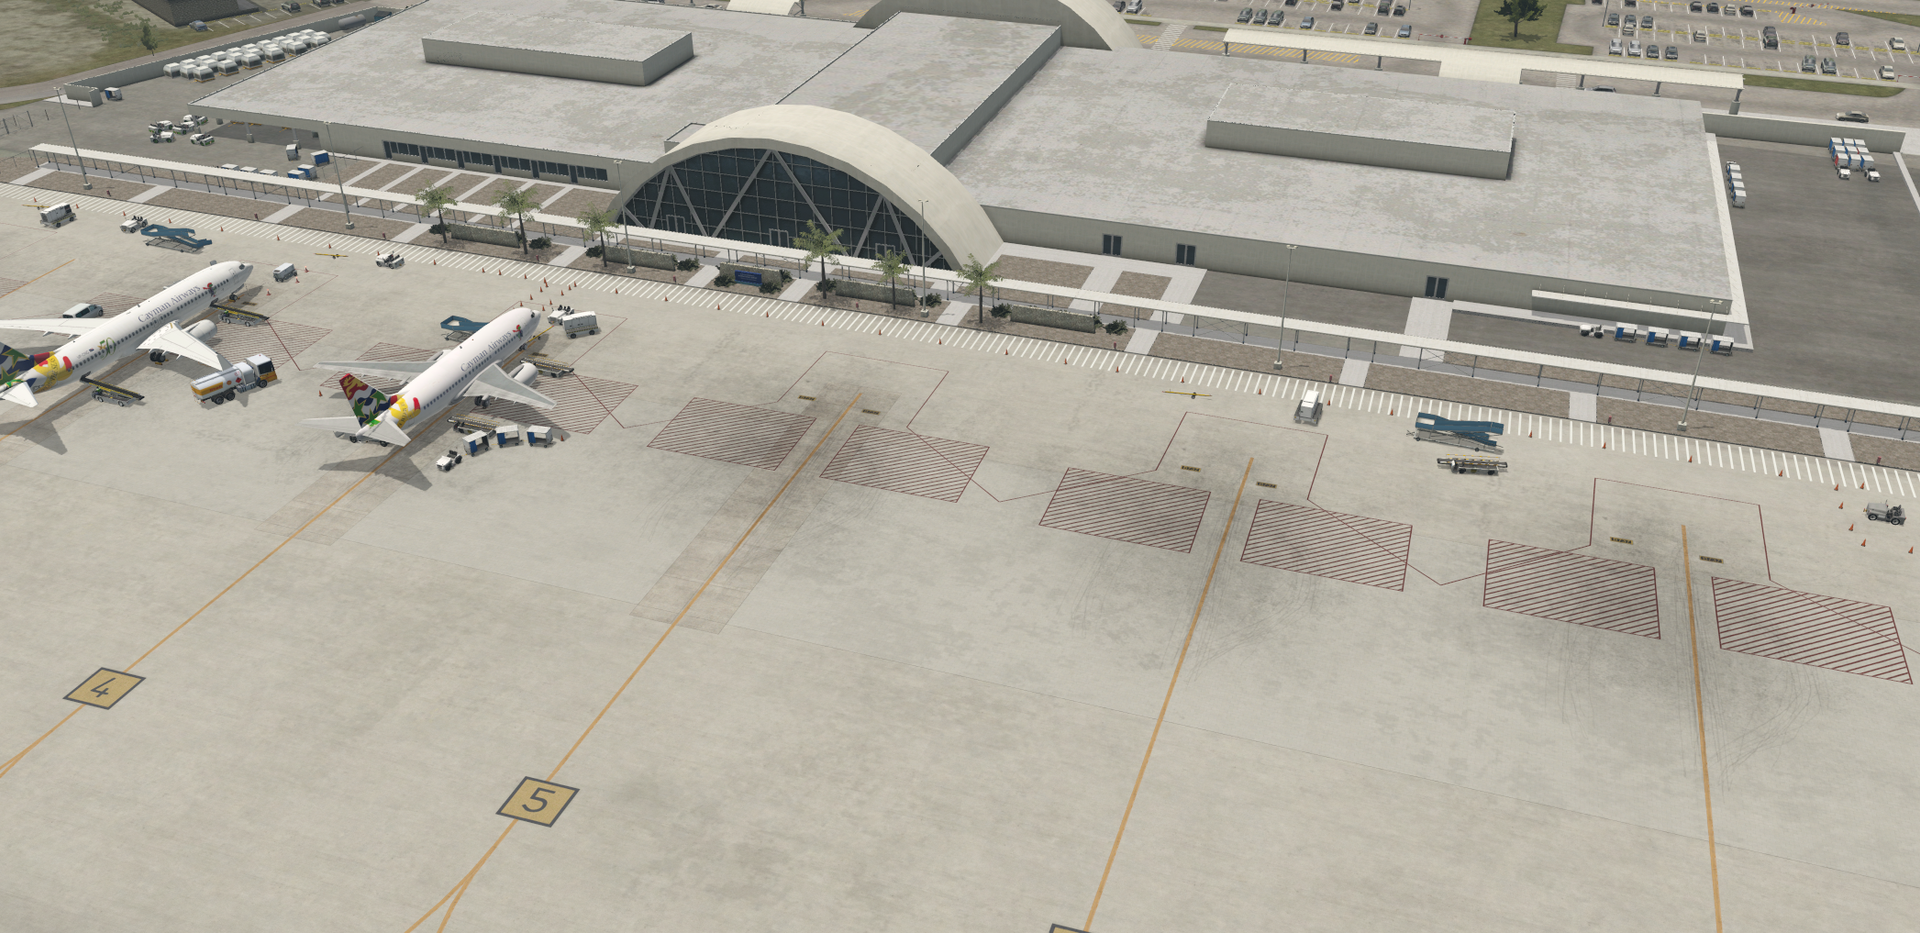 b738_56.png